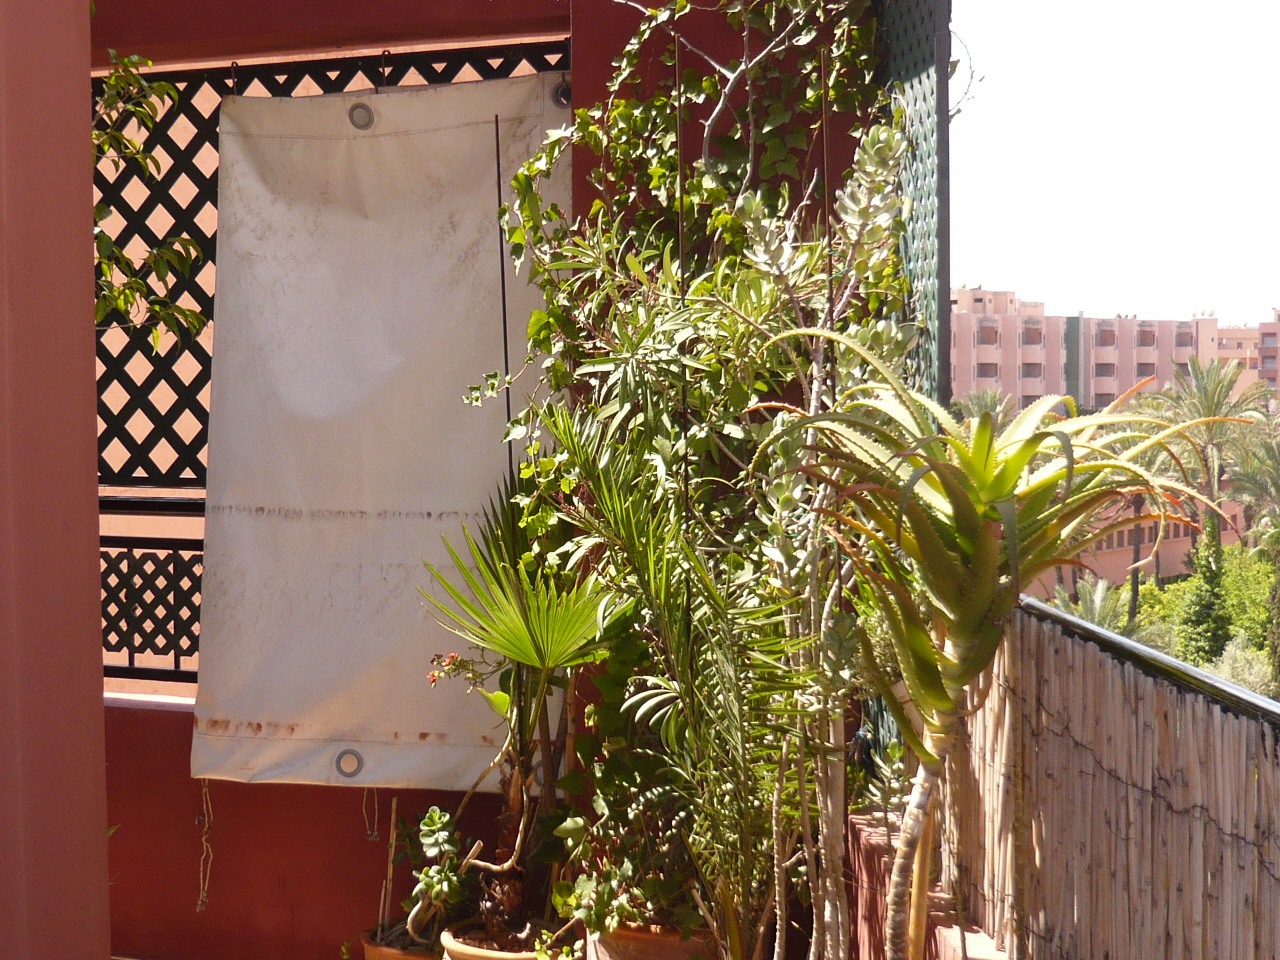 Image appartement en vente Marrakech 9